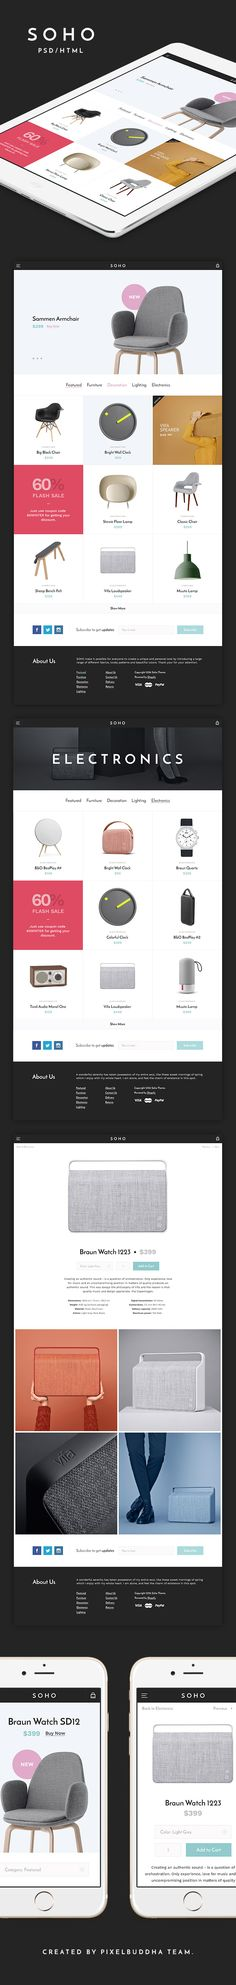 Soho HTML Template - download free html by PixelBuddha